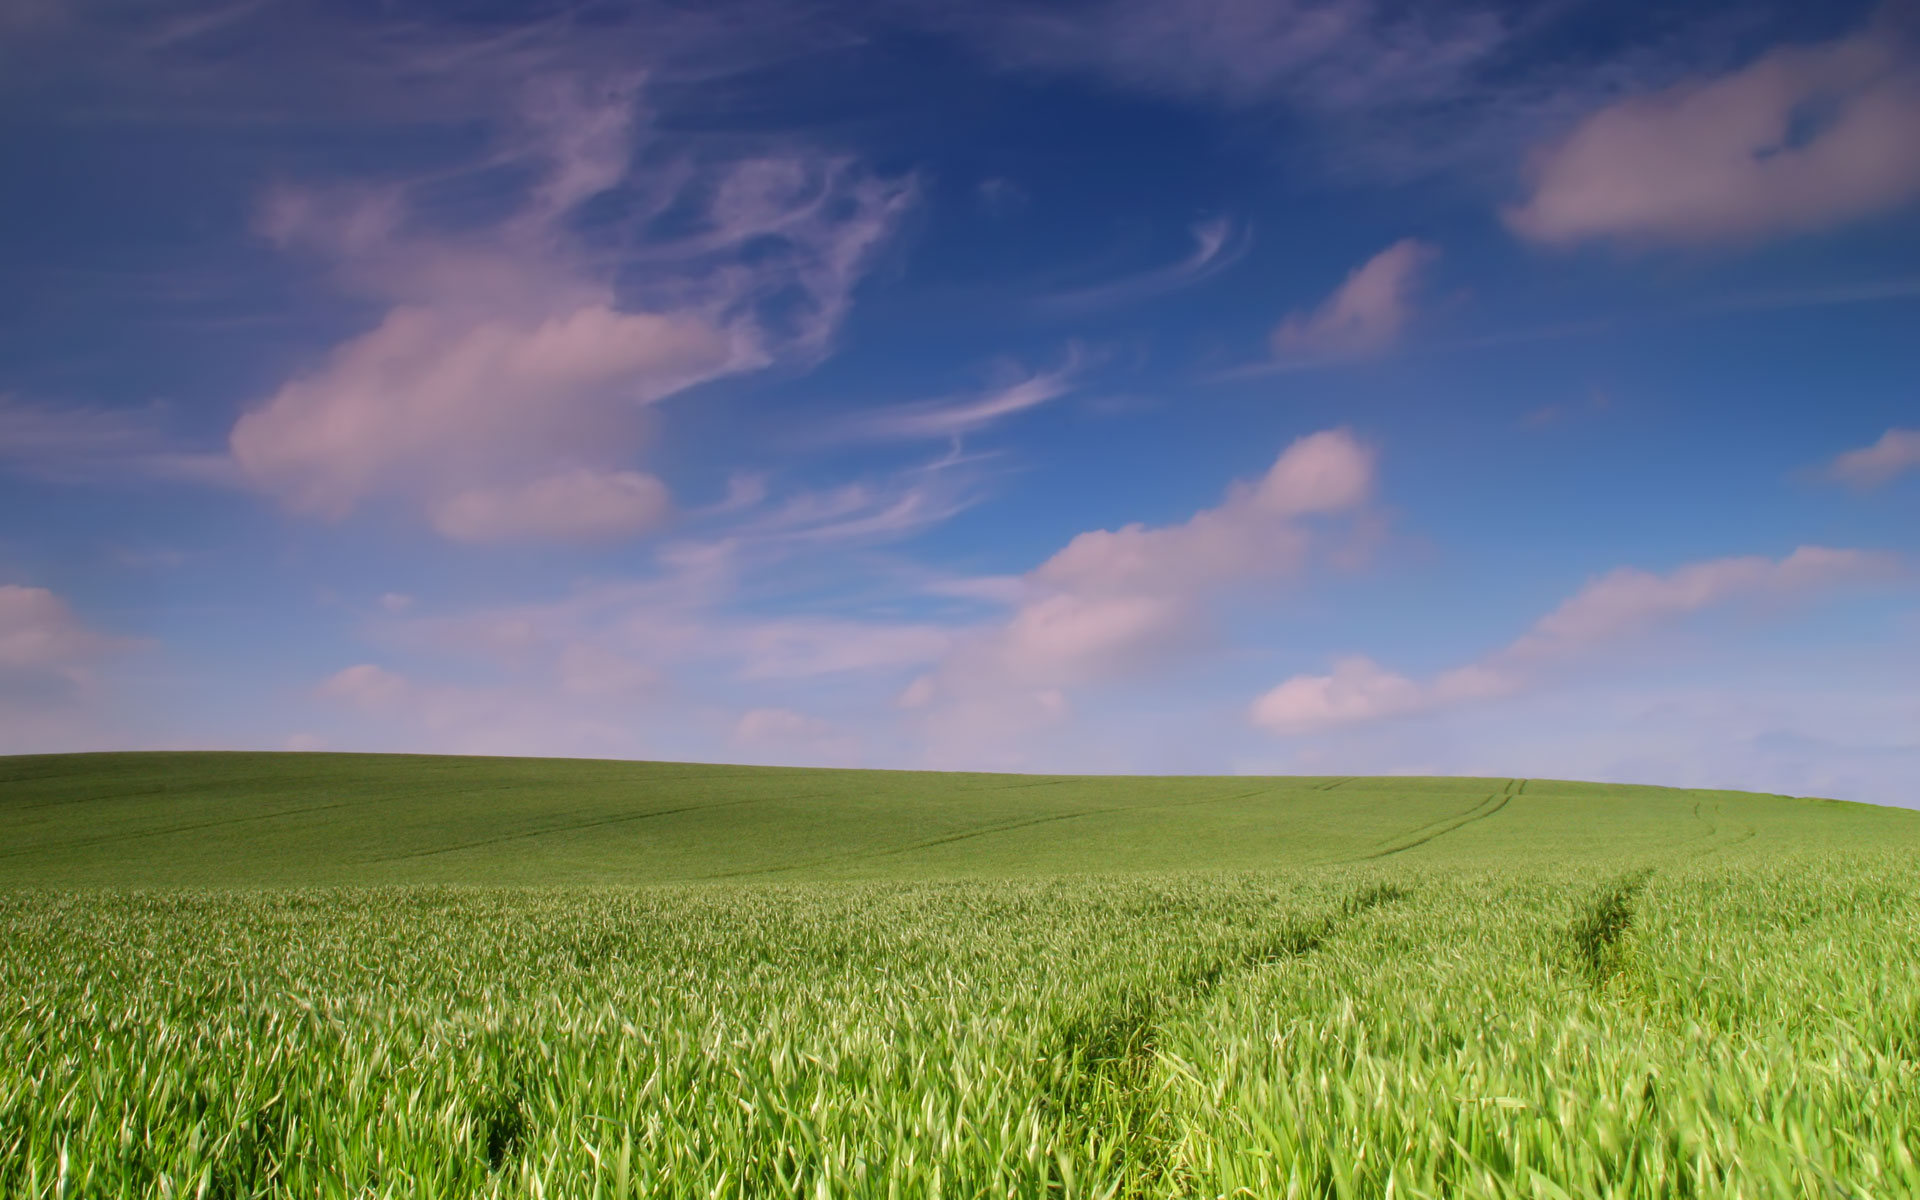 desktop_field_sky_swirly_wheat_landscapes_background_wallpaper_578.jpg